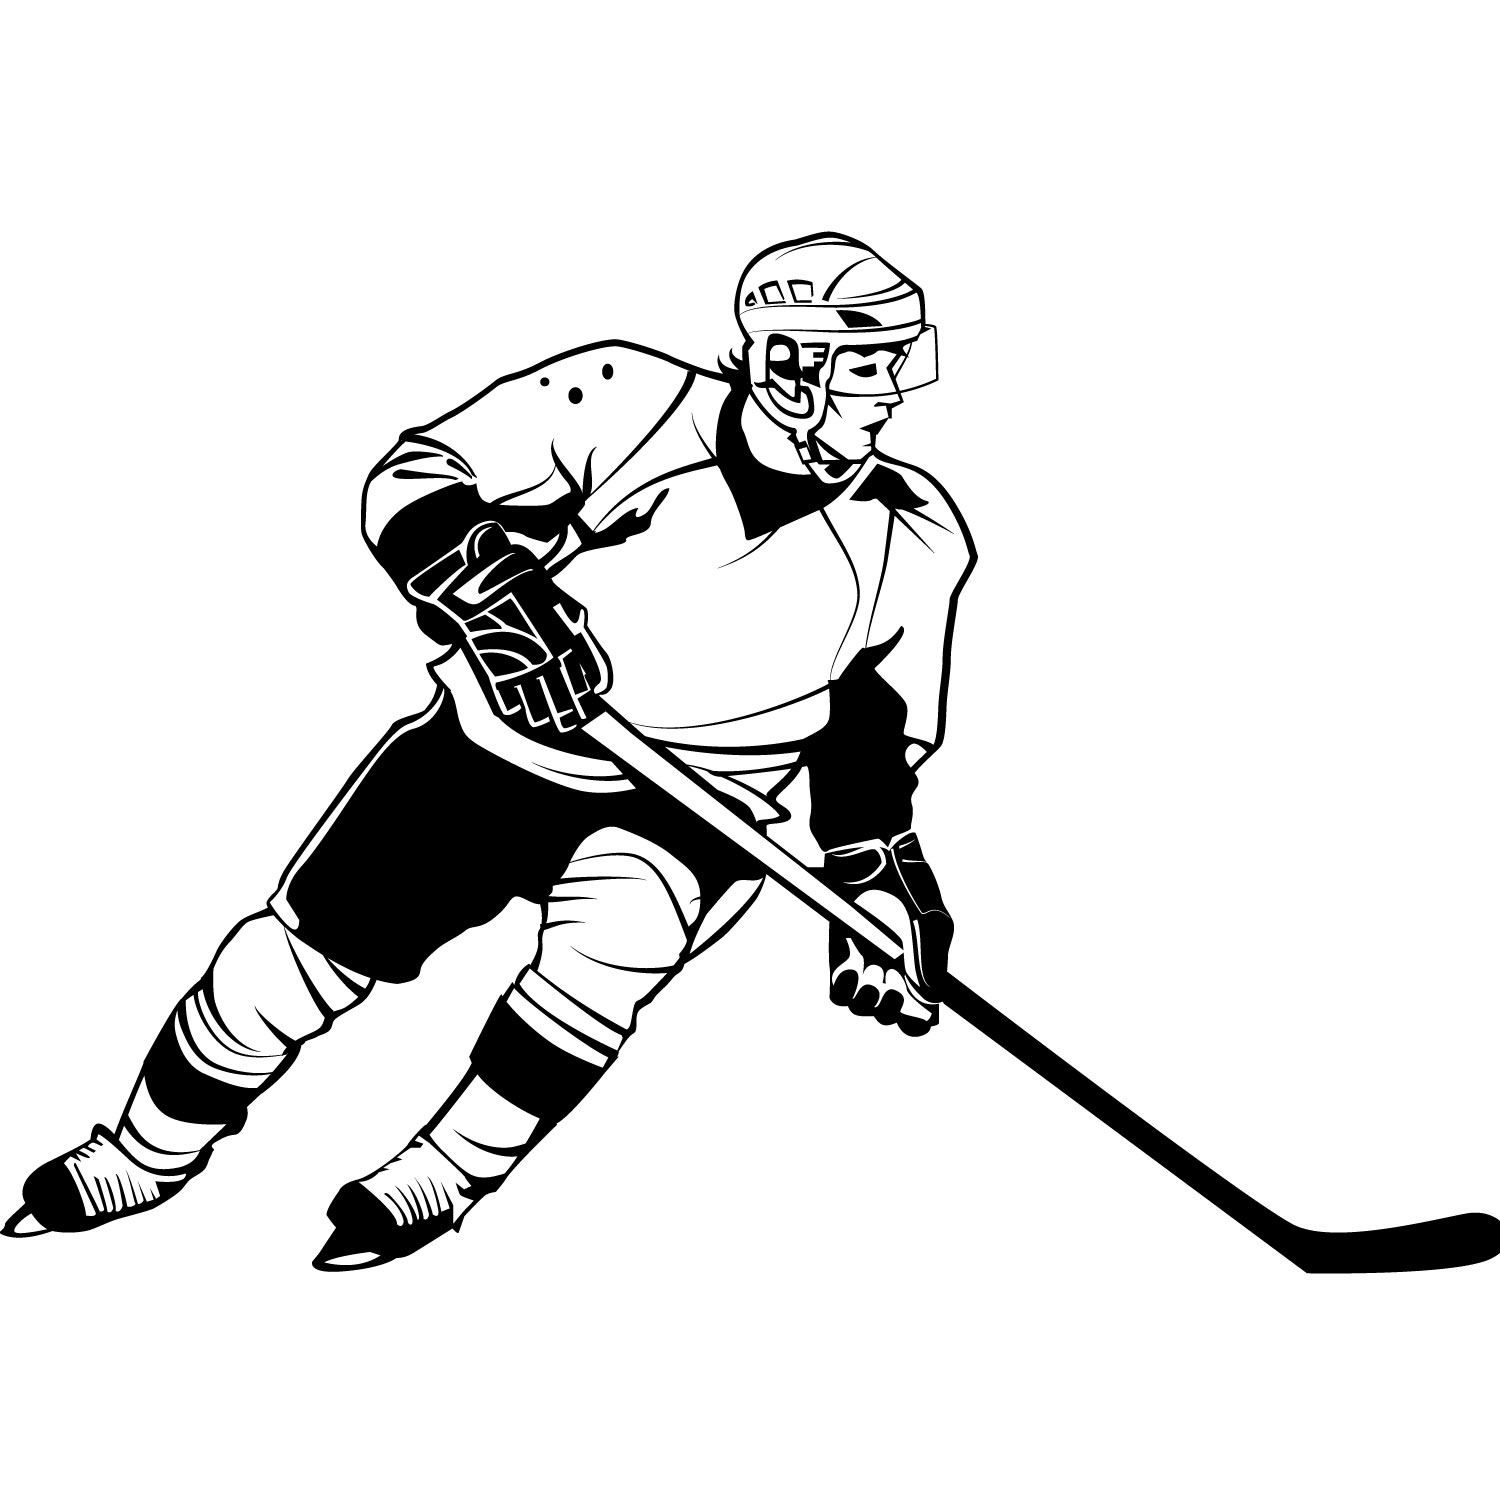 10  Images About Clipart Hockey On Pinte-10  images about clipart Hockey on Pinterest | Snoopy love, Clip art and Snoopy-0